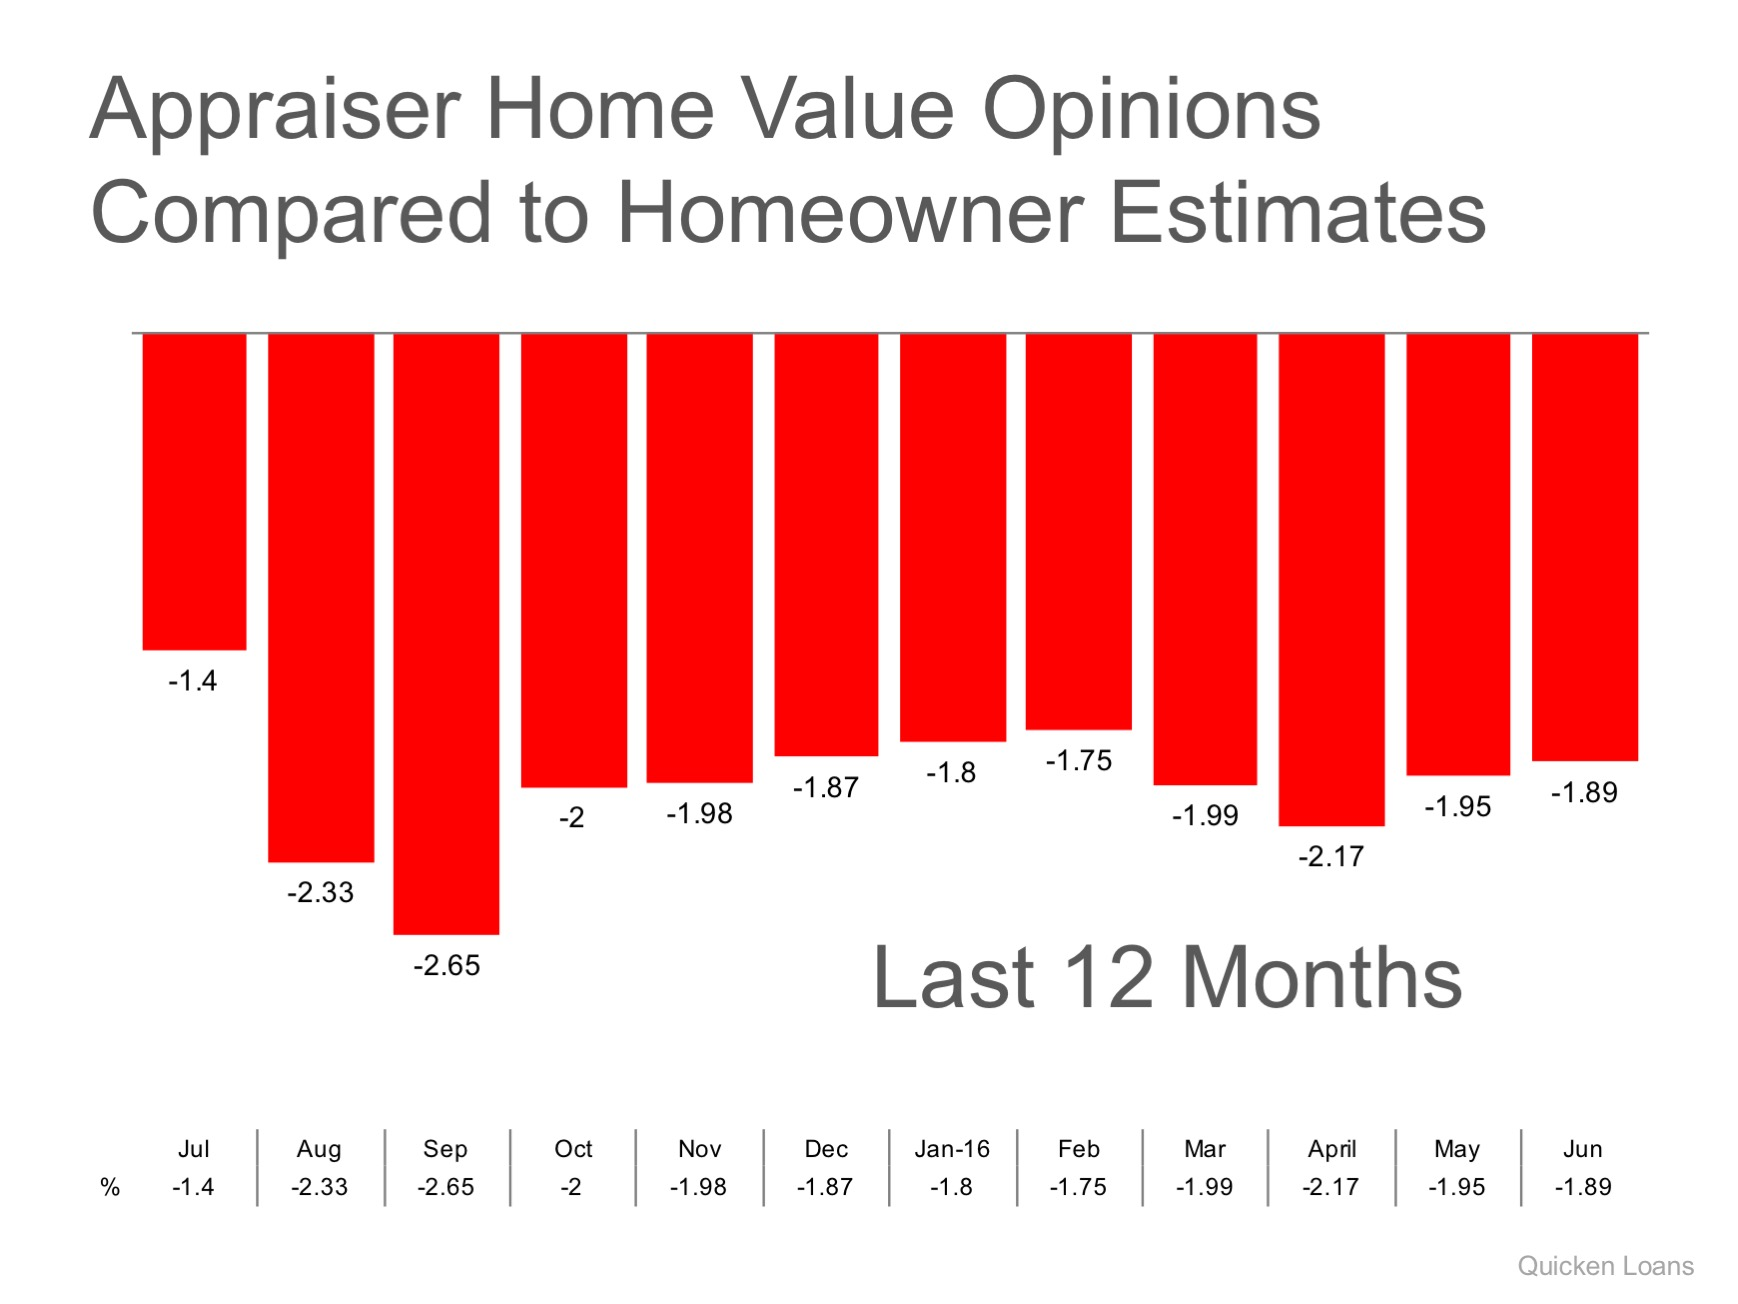 Gap Between Homeowner's & Appraiser's Opinions Narrows Slightly | MyKCM